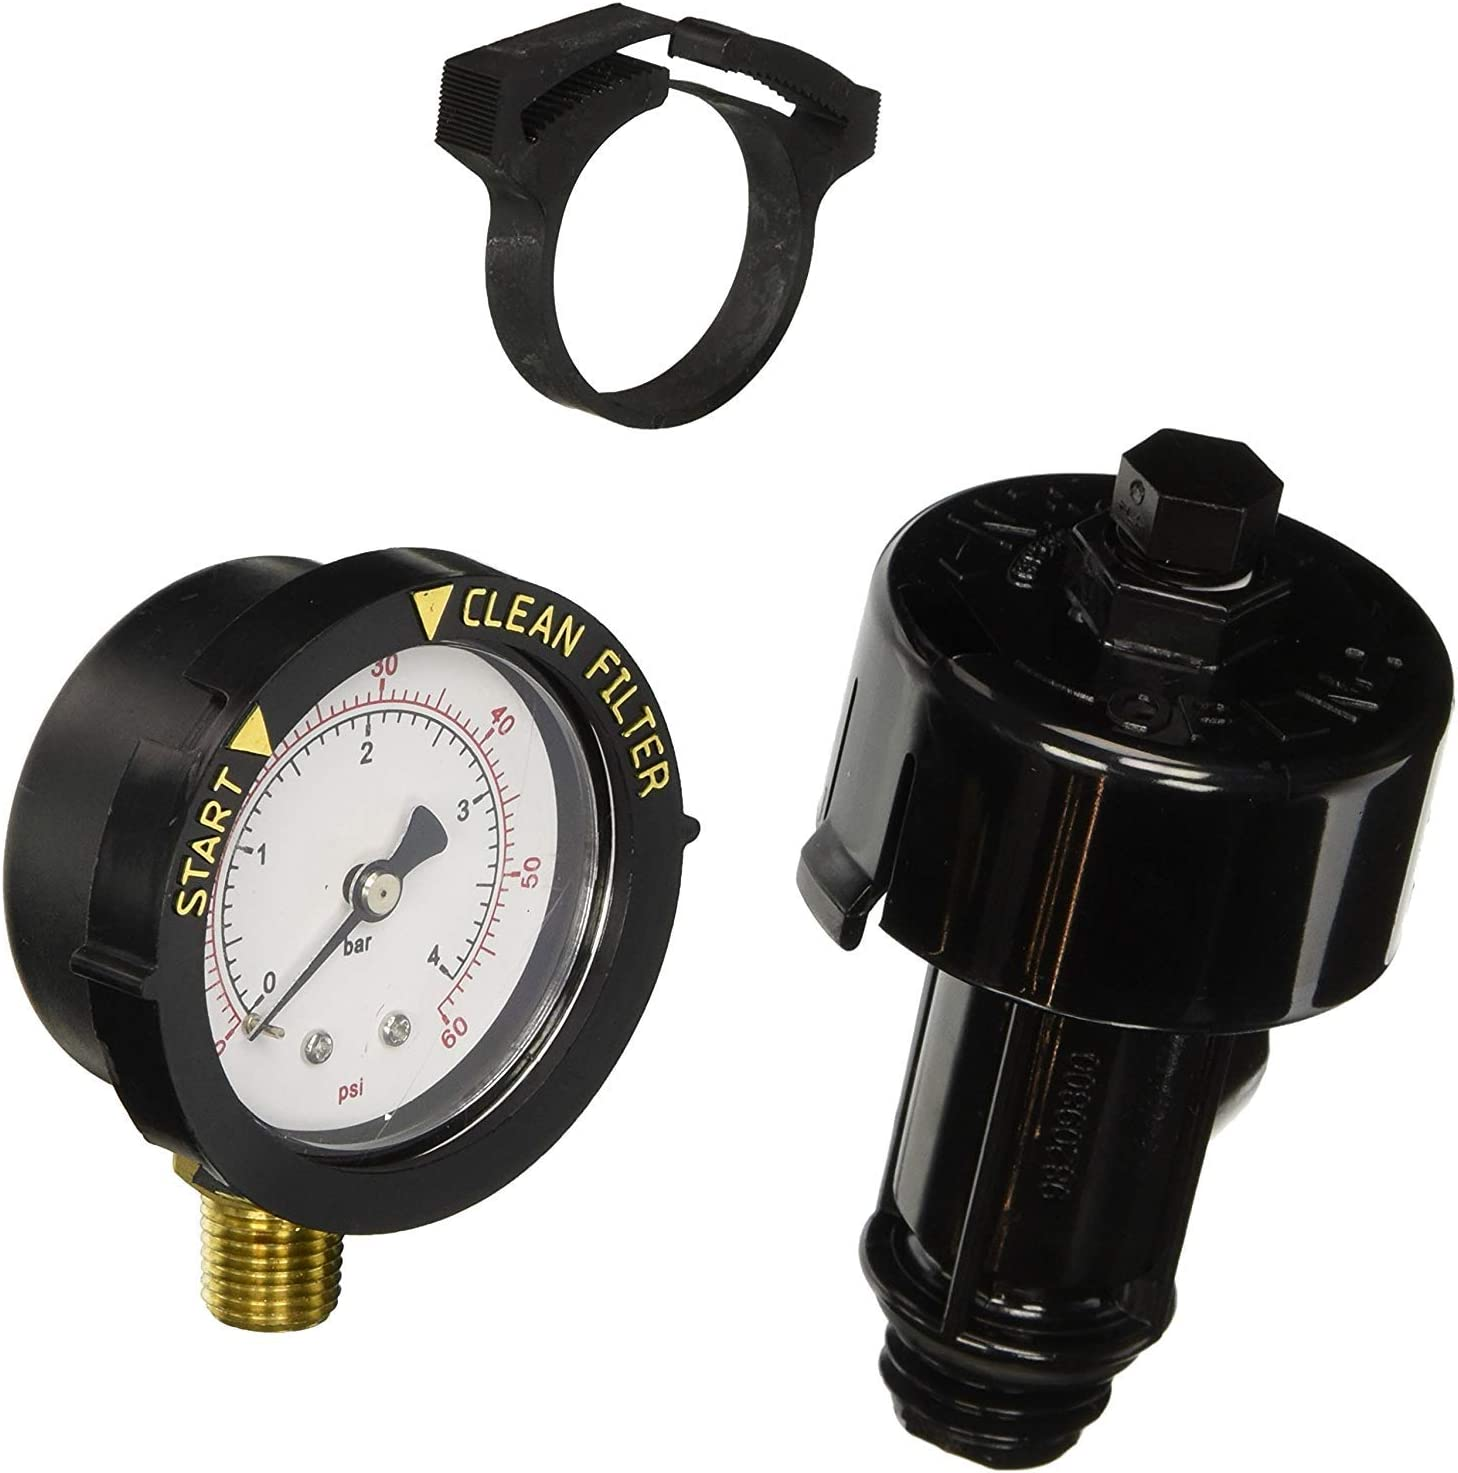 Pentair 190058 FNS Clean /& Clear 0-60 psi Pool Filter Pressure Gauge Replacement